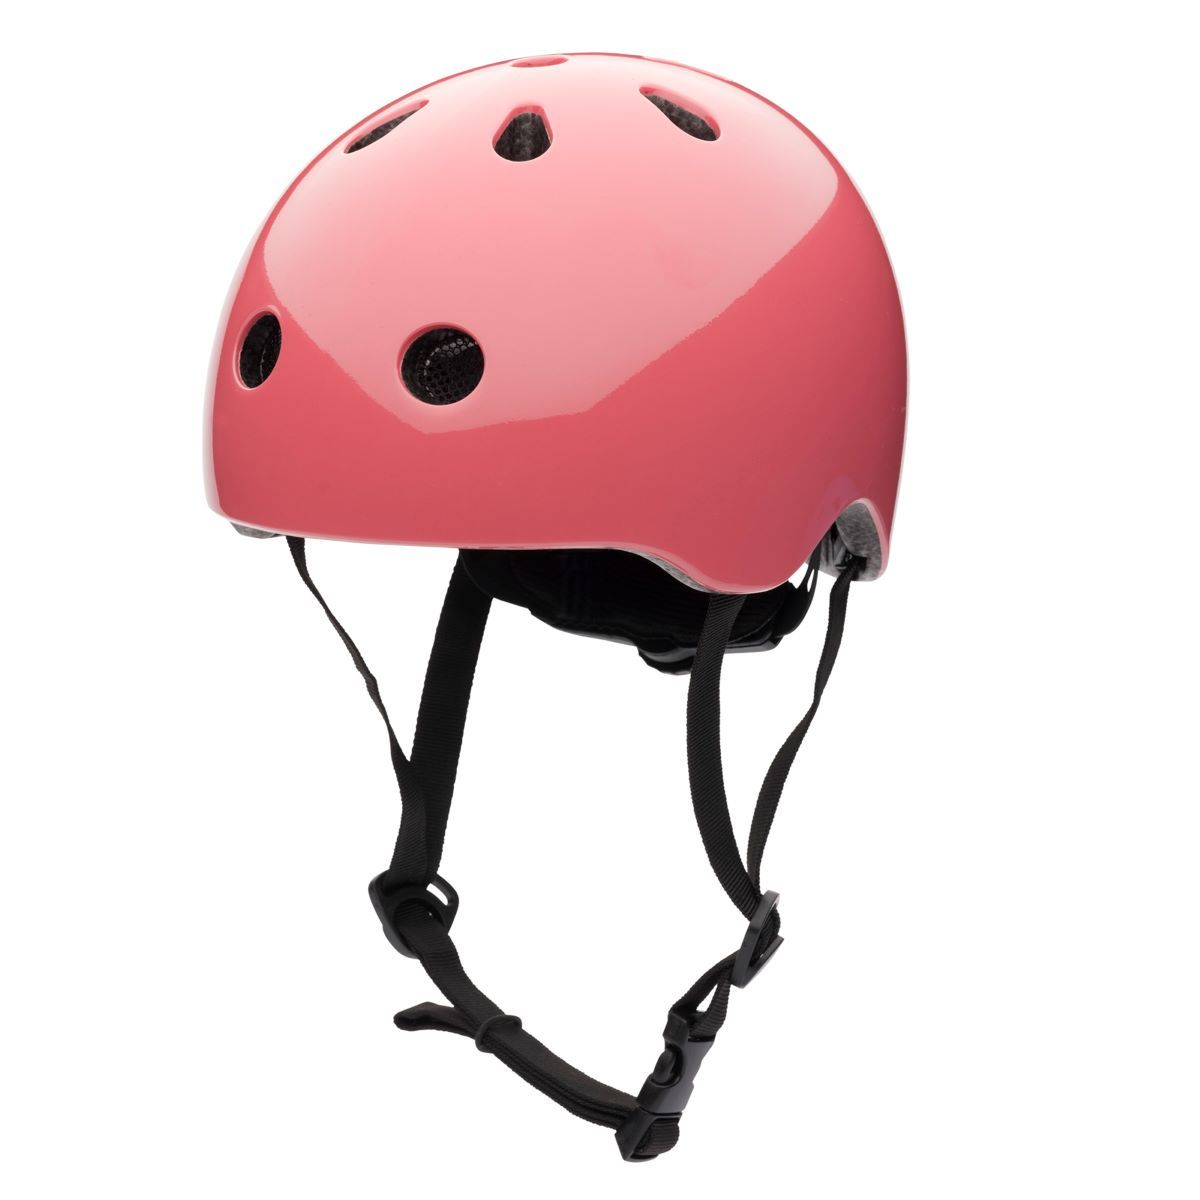 Trybike CoConuts Helmet in Pink - Extra Small